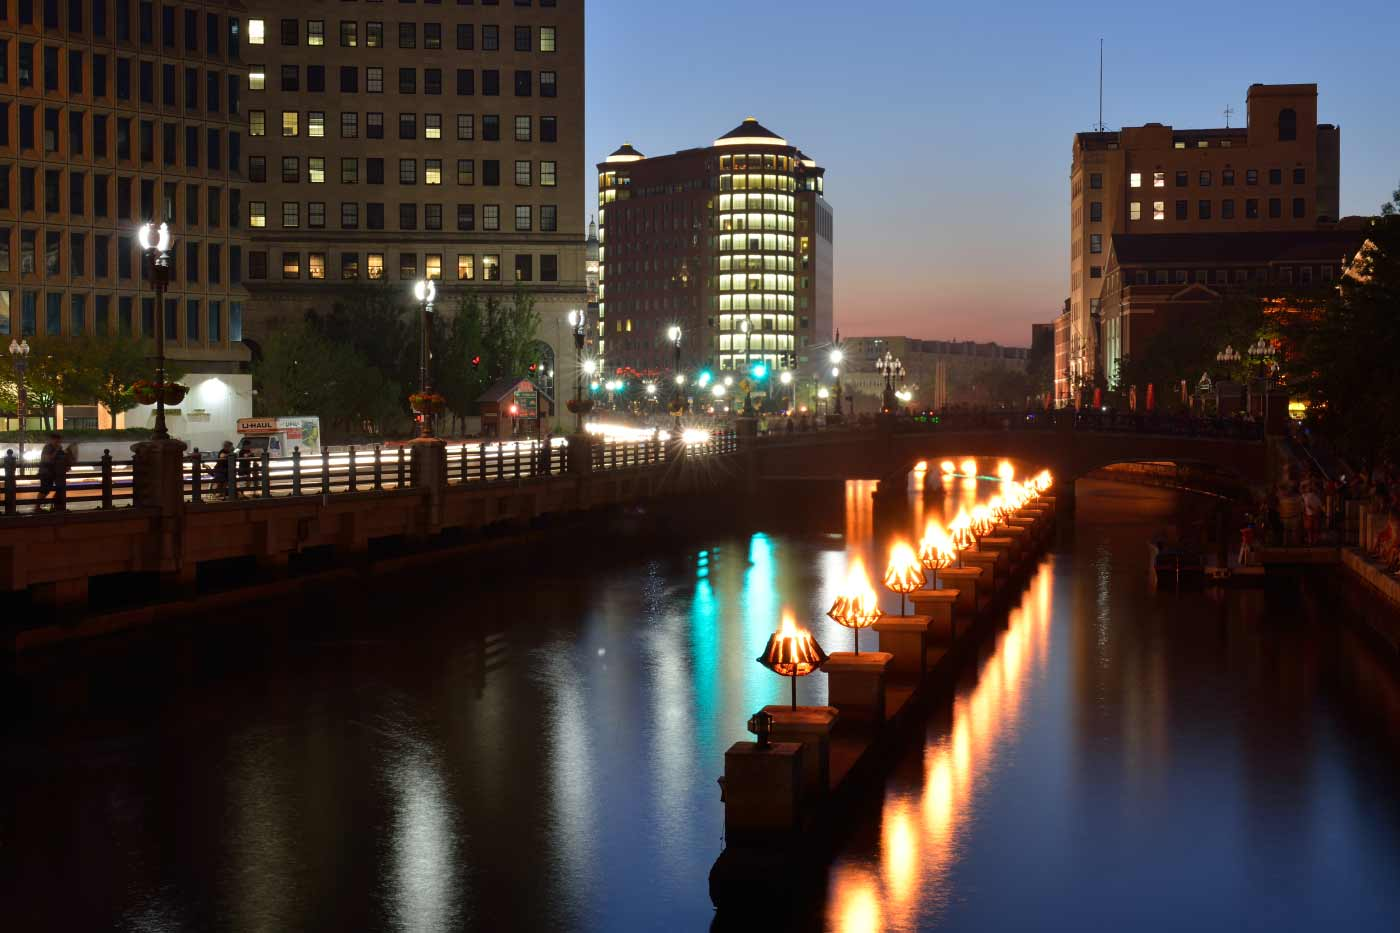 Waterfire in downtown Providence, RI